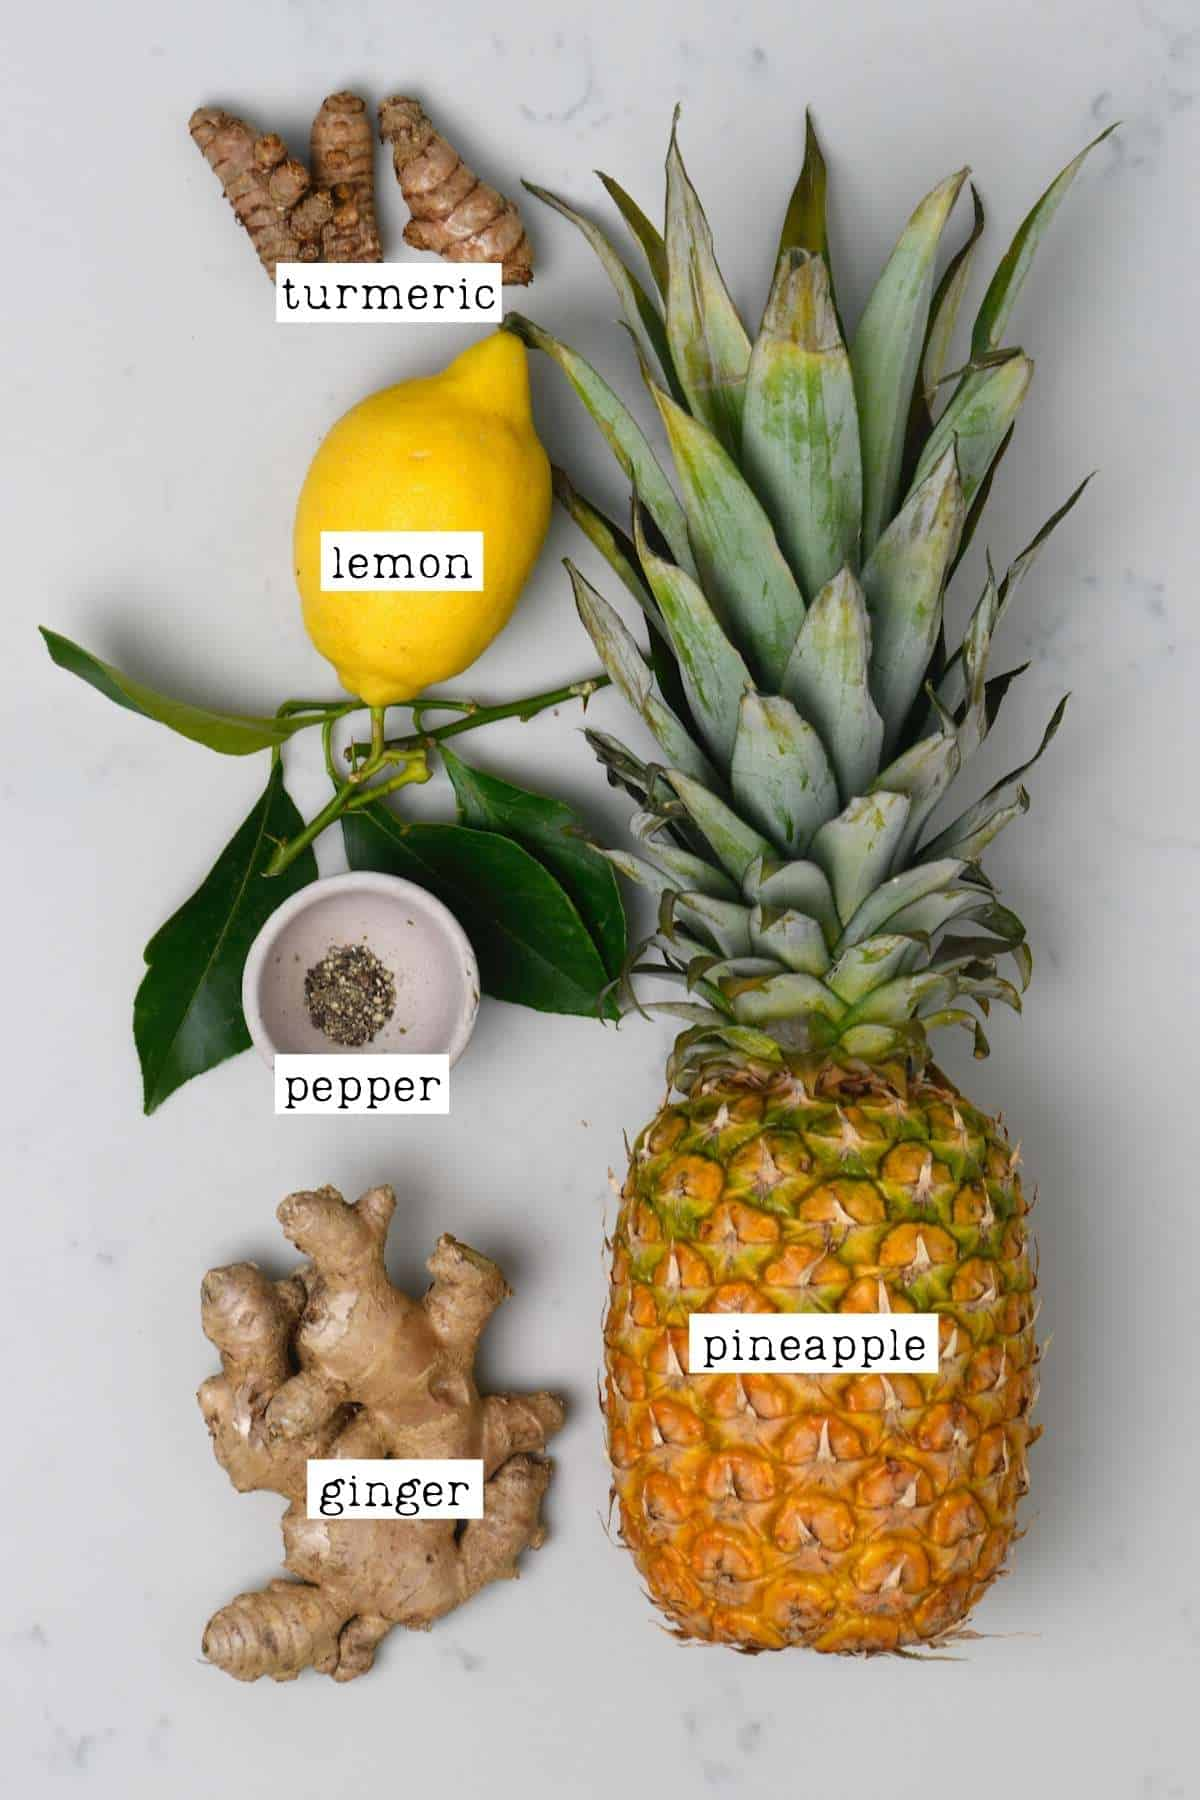 Ingredients for pineapple ginger juice